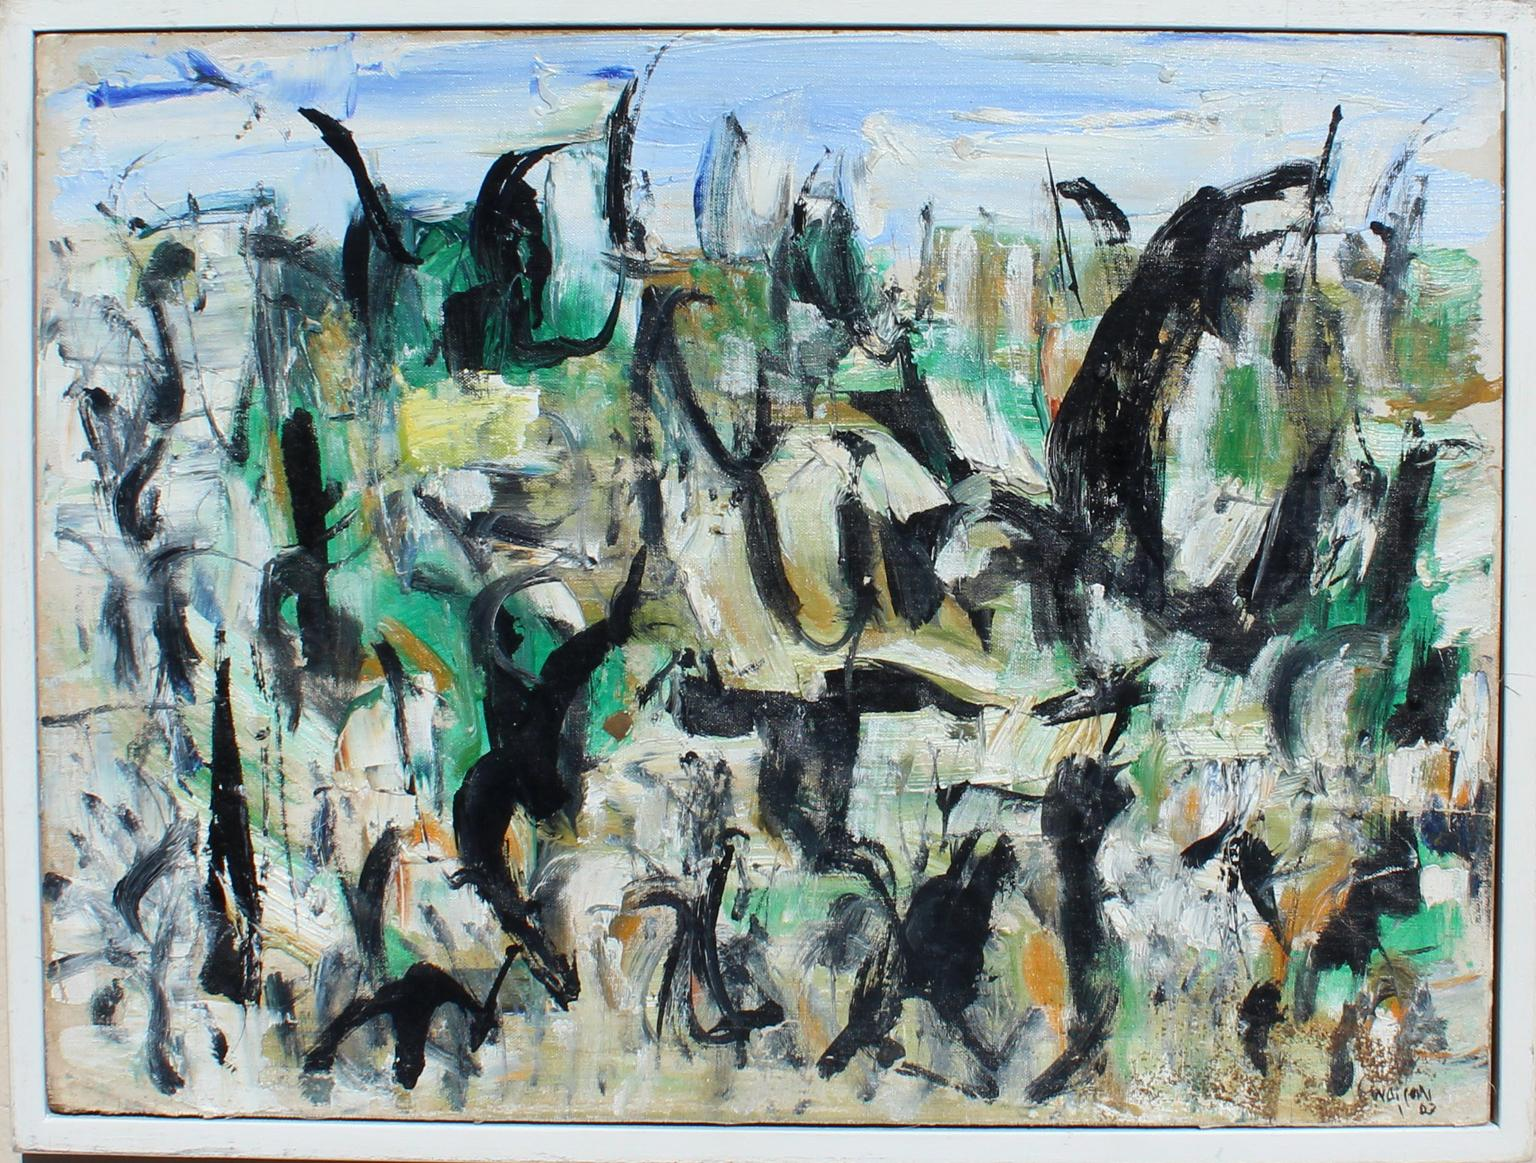 Untitled, D153